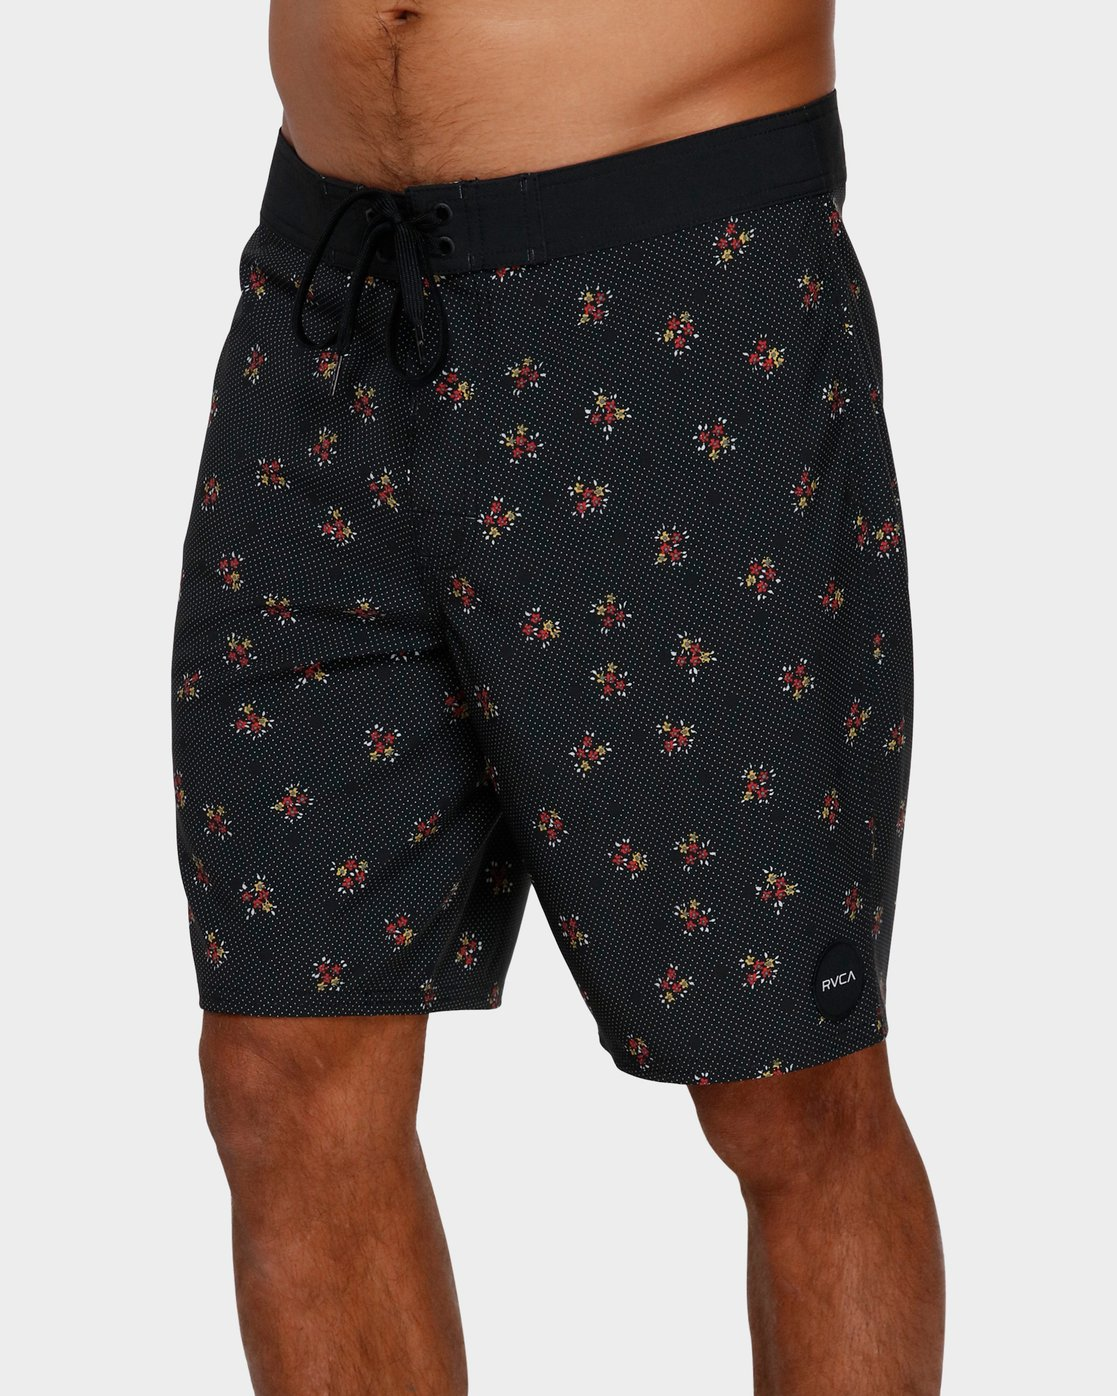 0 VA Trunk Print Black R393410 RVCA